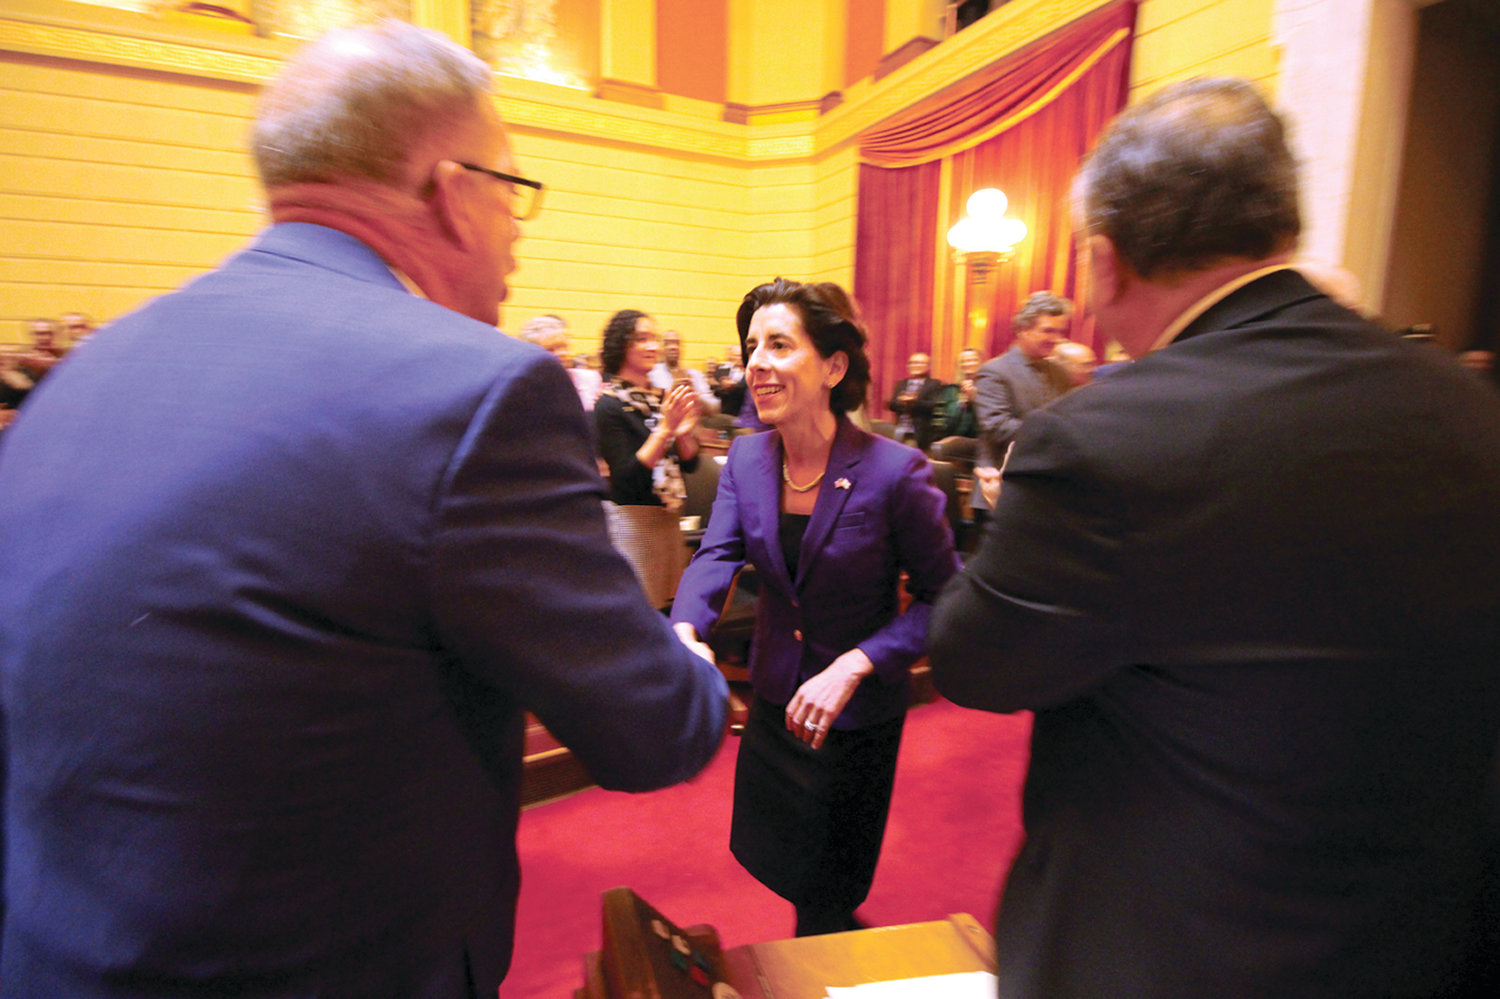 WELCOME: Warwick Rep. Joseph McNamara and fellow legislators greeted state department directors as they entered the chambers Tuesday for the governor's State of the State address. Here McNamara shakes hands with Governor Gina Raimondo.